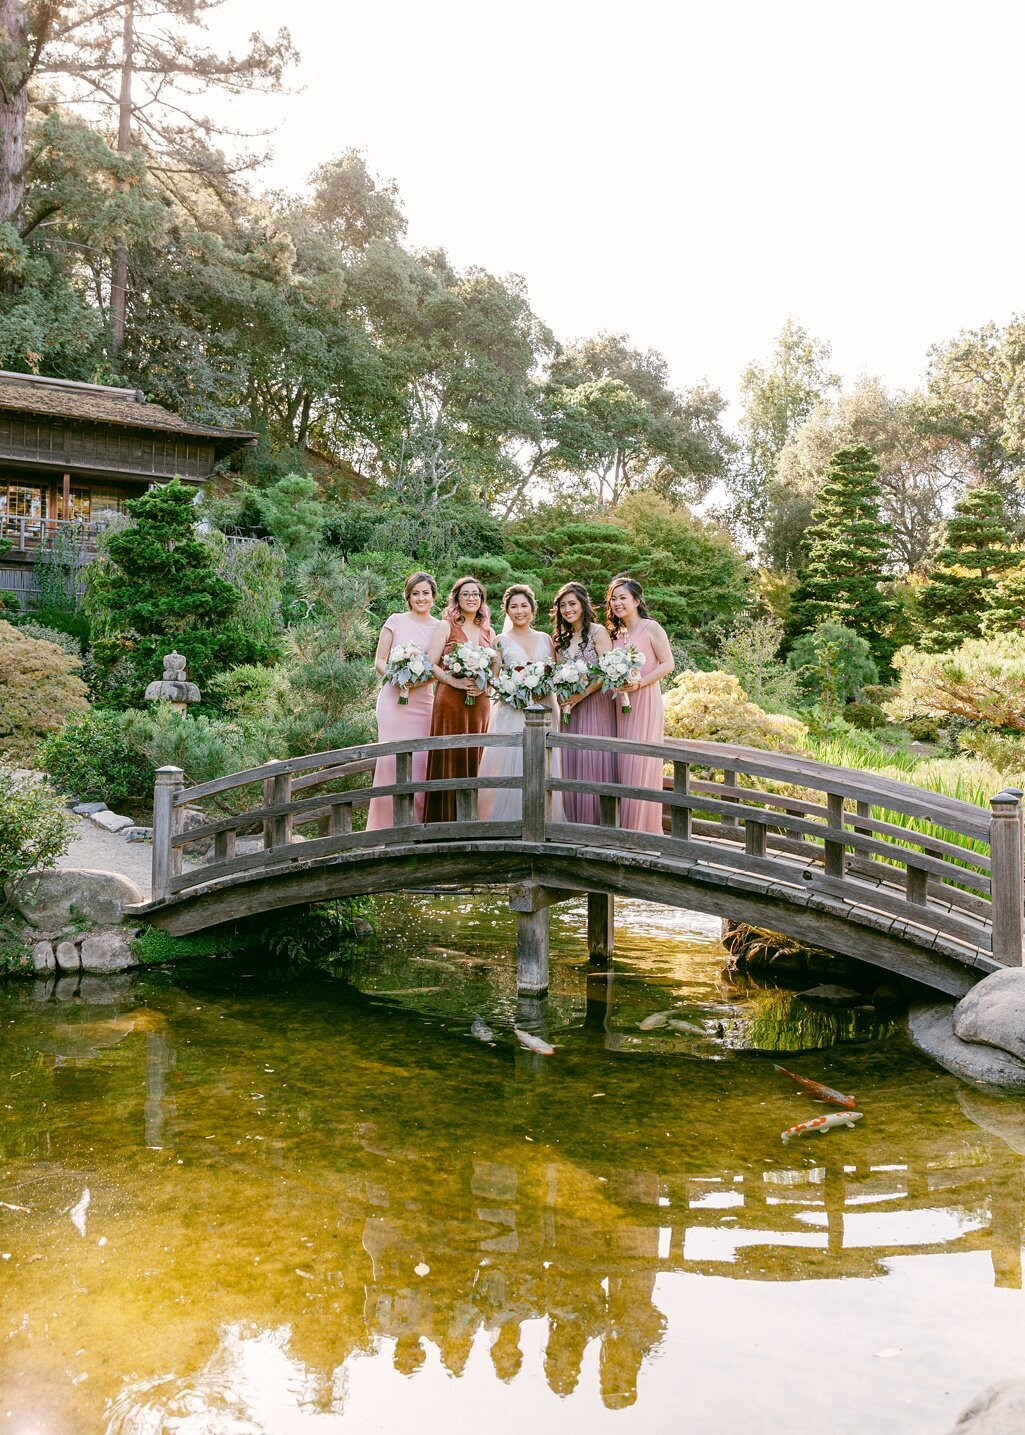 Jessie-Barksdale-Photography_Hakone-Gardens-Saratoga_San-Francisco-Bay-Area-Wedding-Photographer_0055